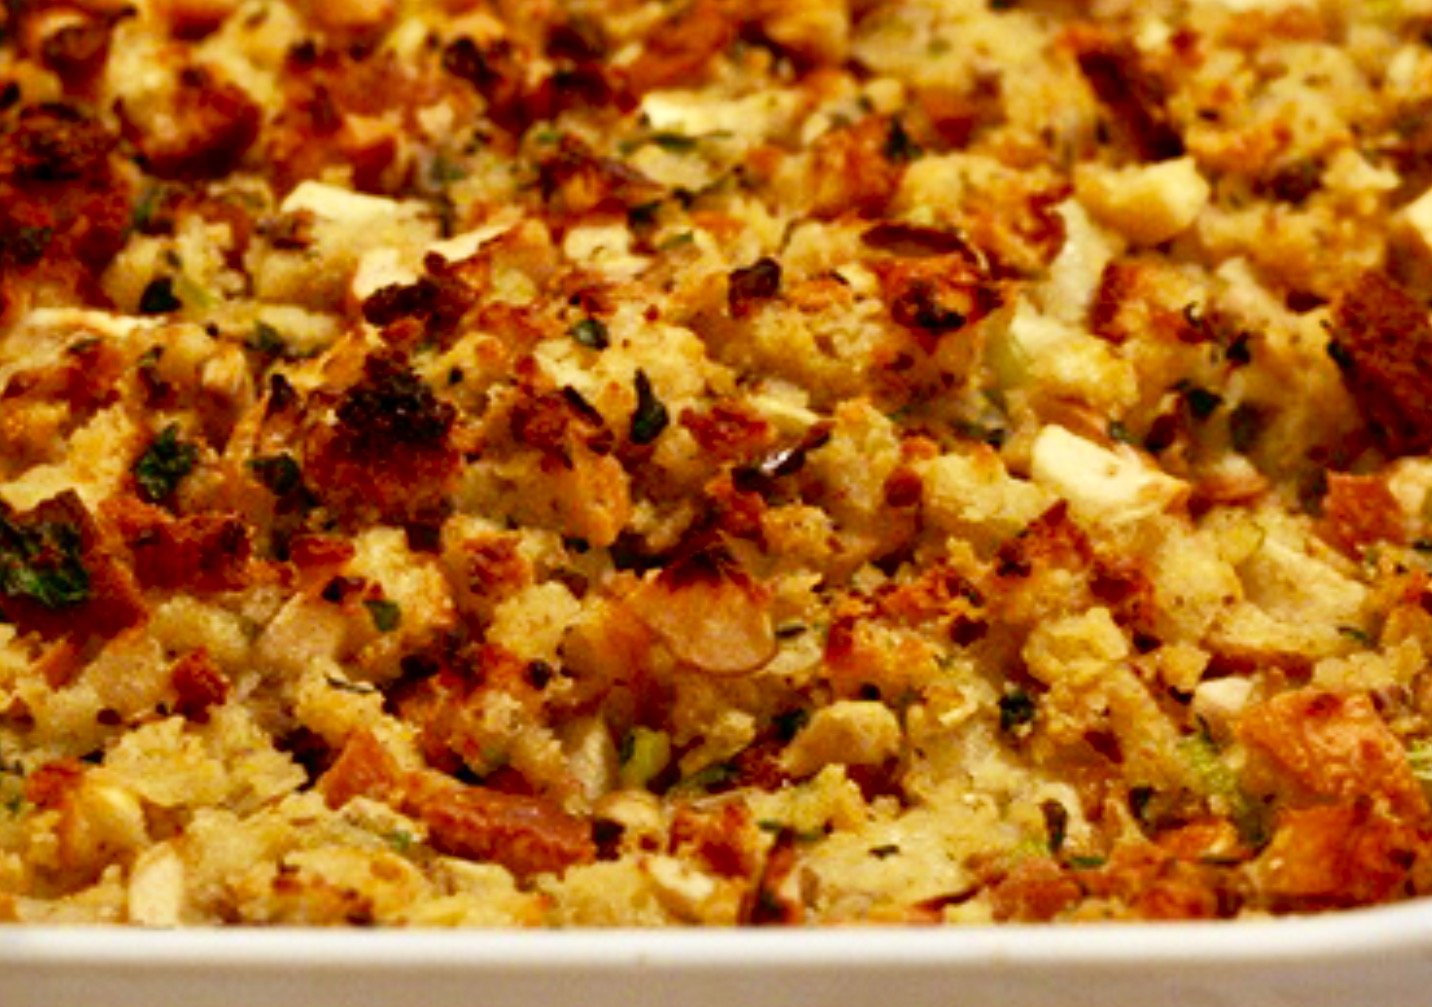 Chef Kamil's Thanksgiving stuffing recipe